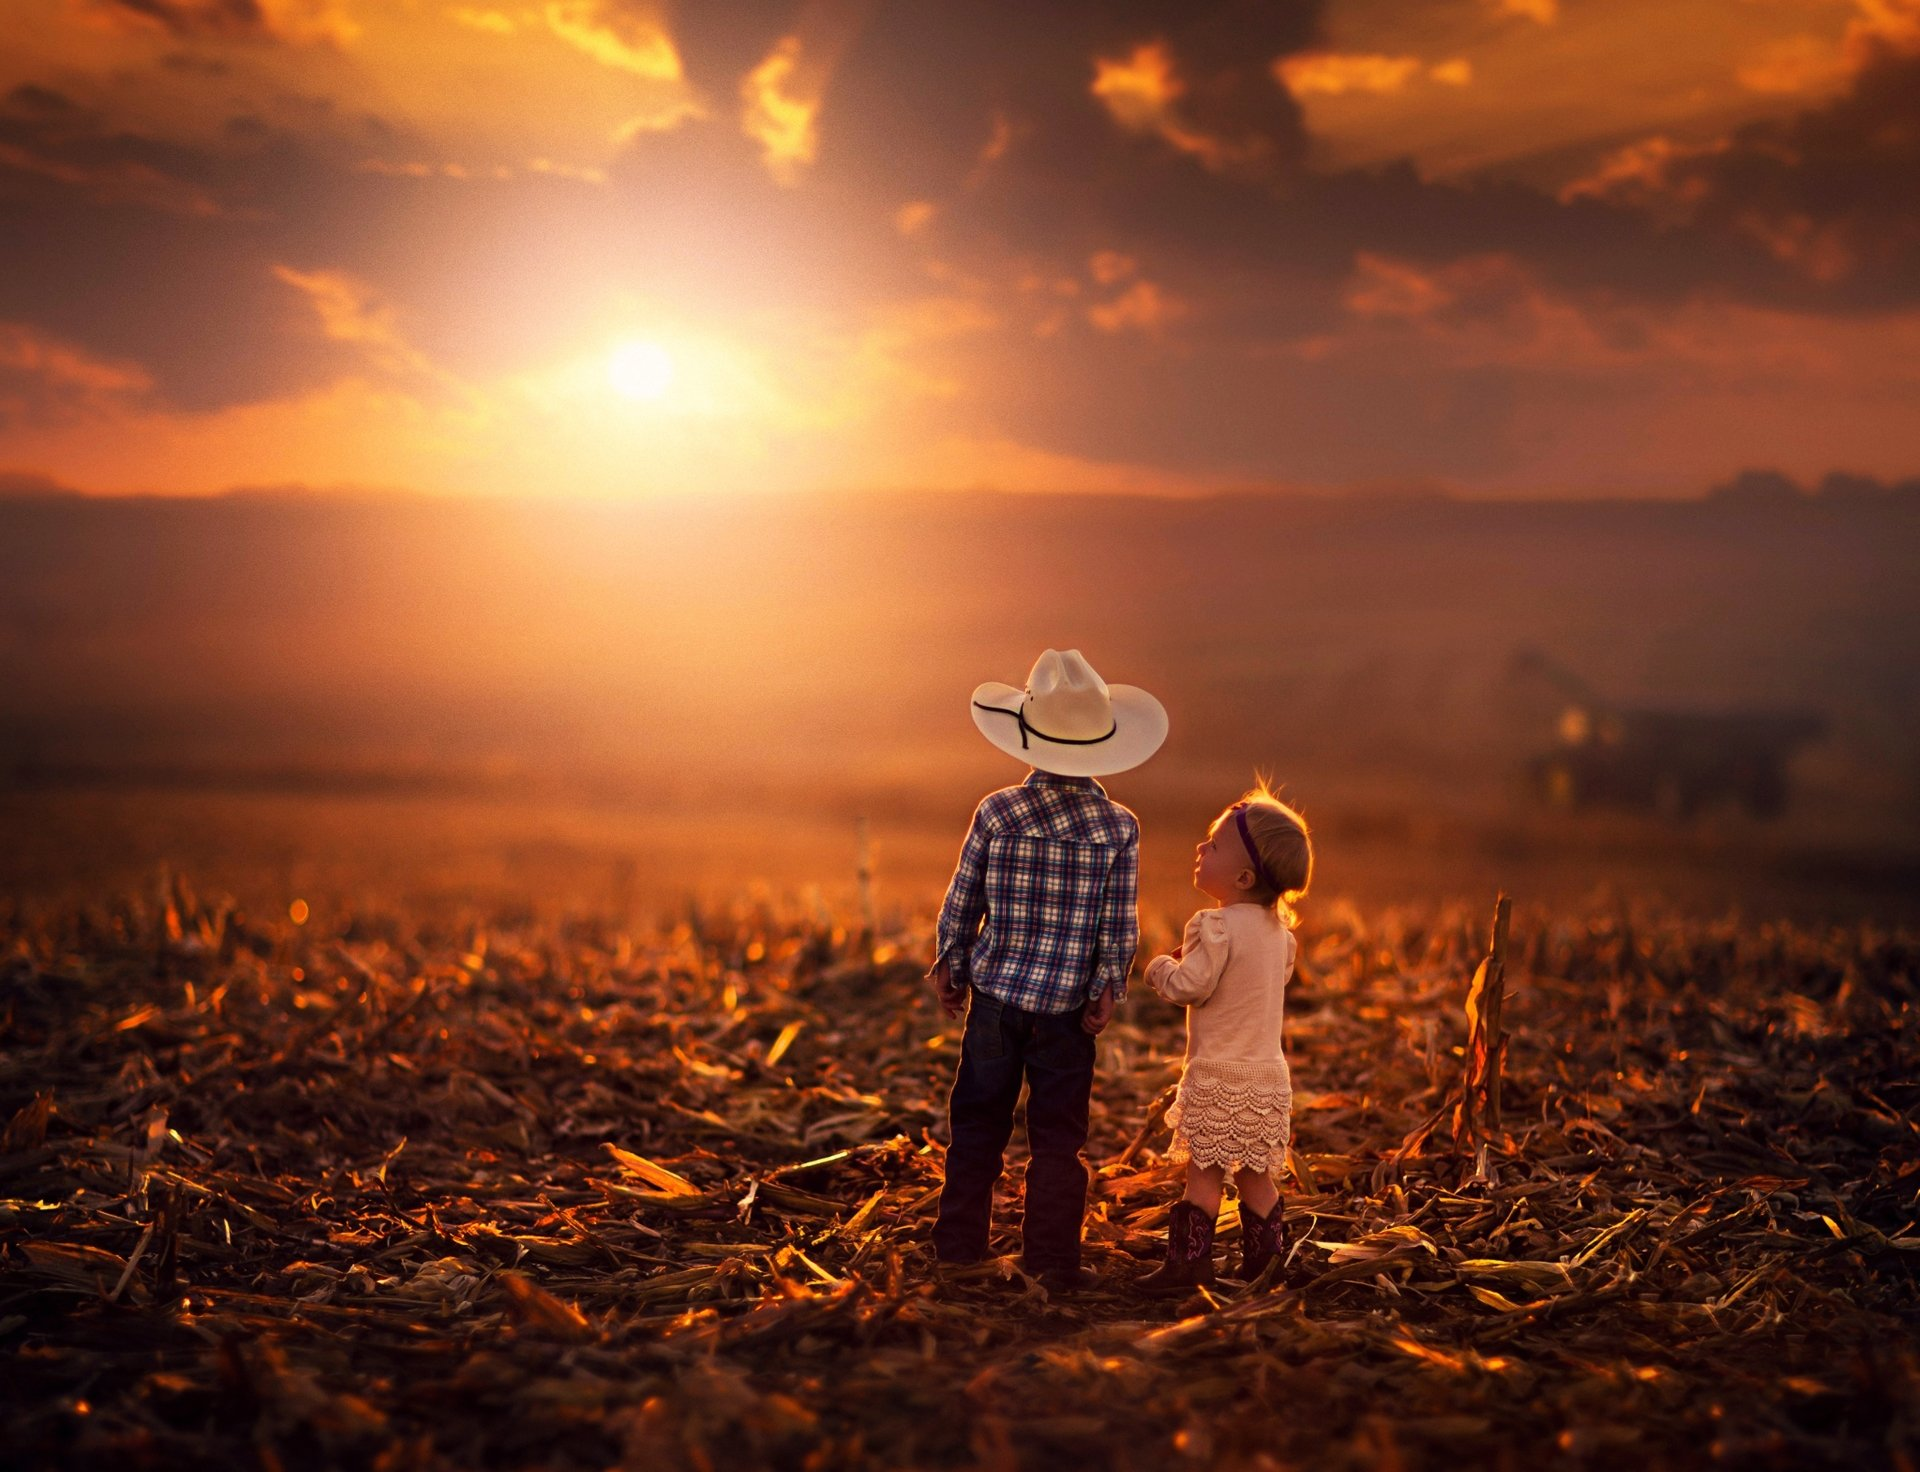 Baby Girl And Boy Love Wallpaper Kids Amp Sunset 4k Ultra Hd Wallpaper Background Image